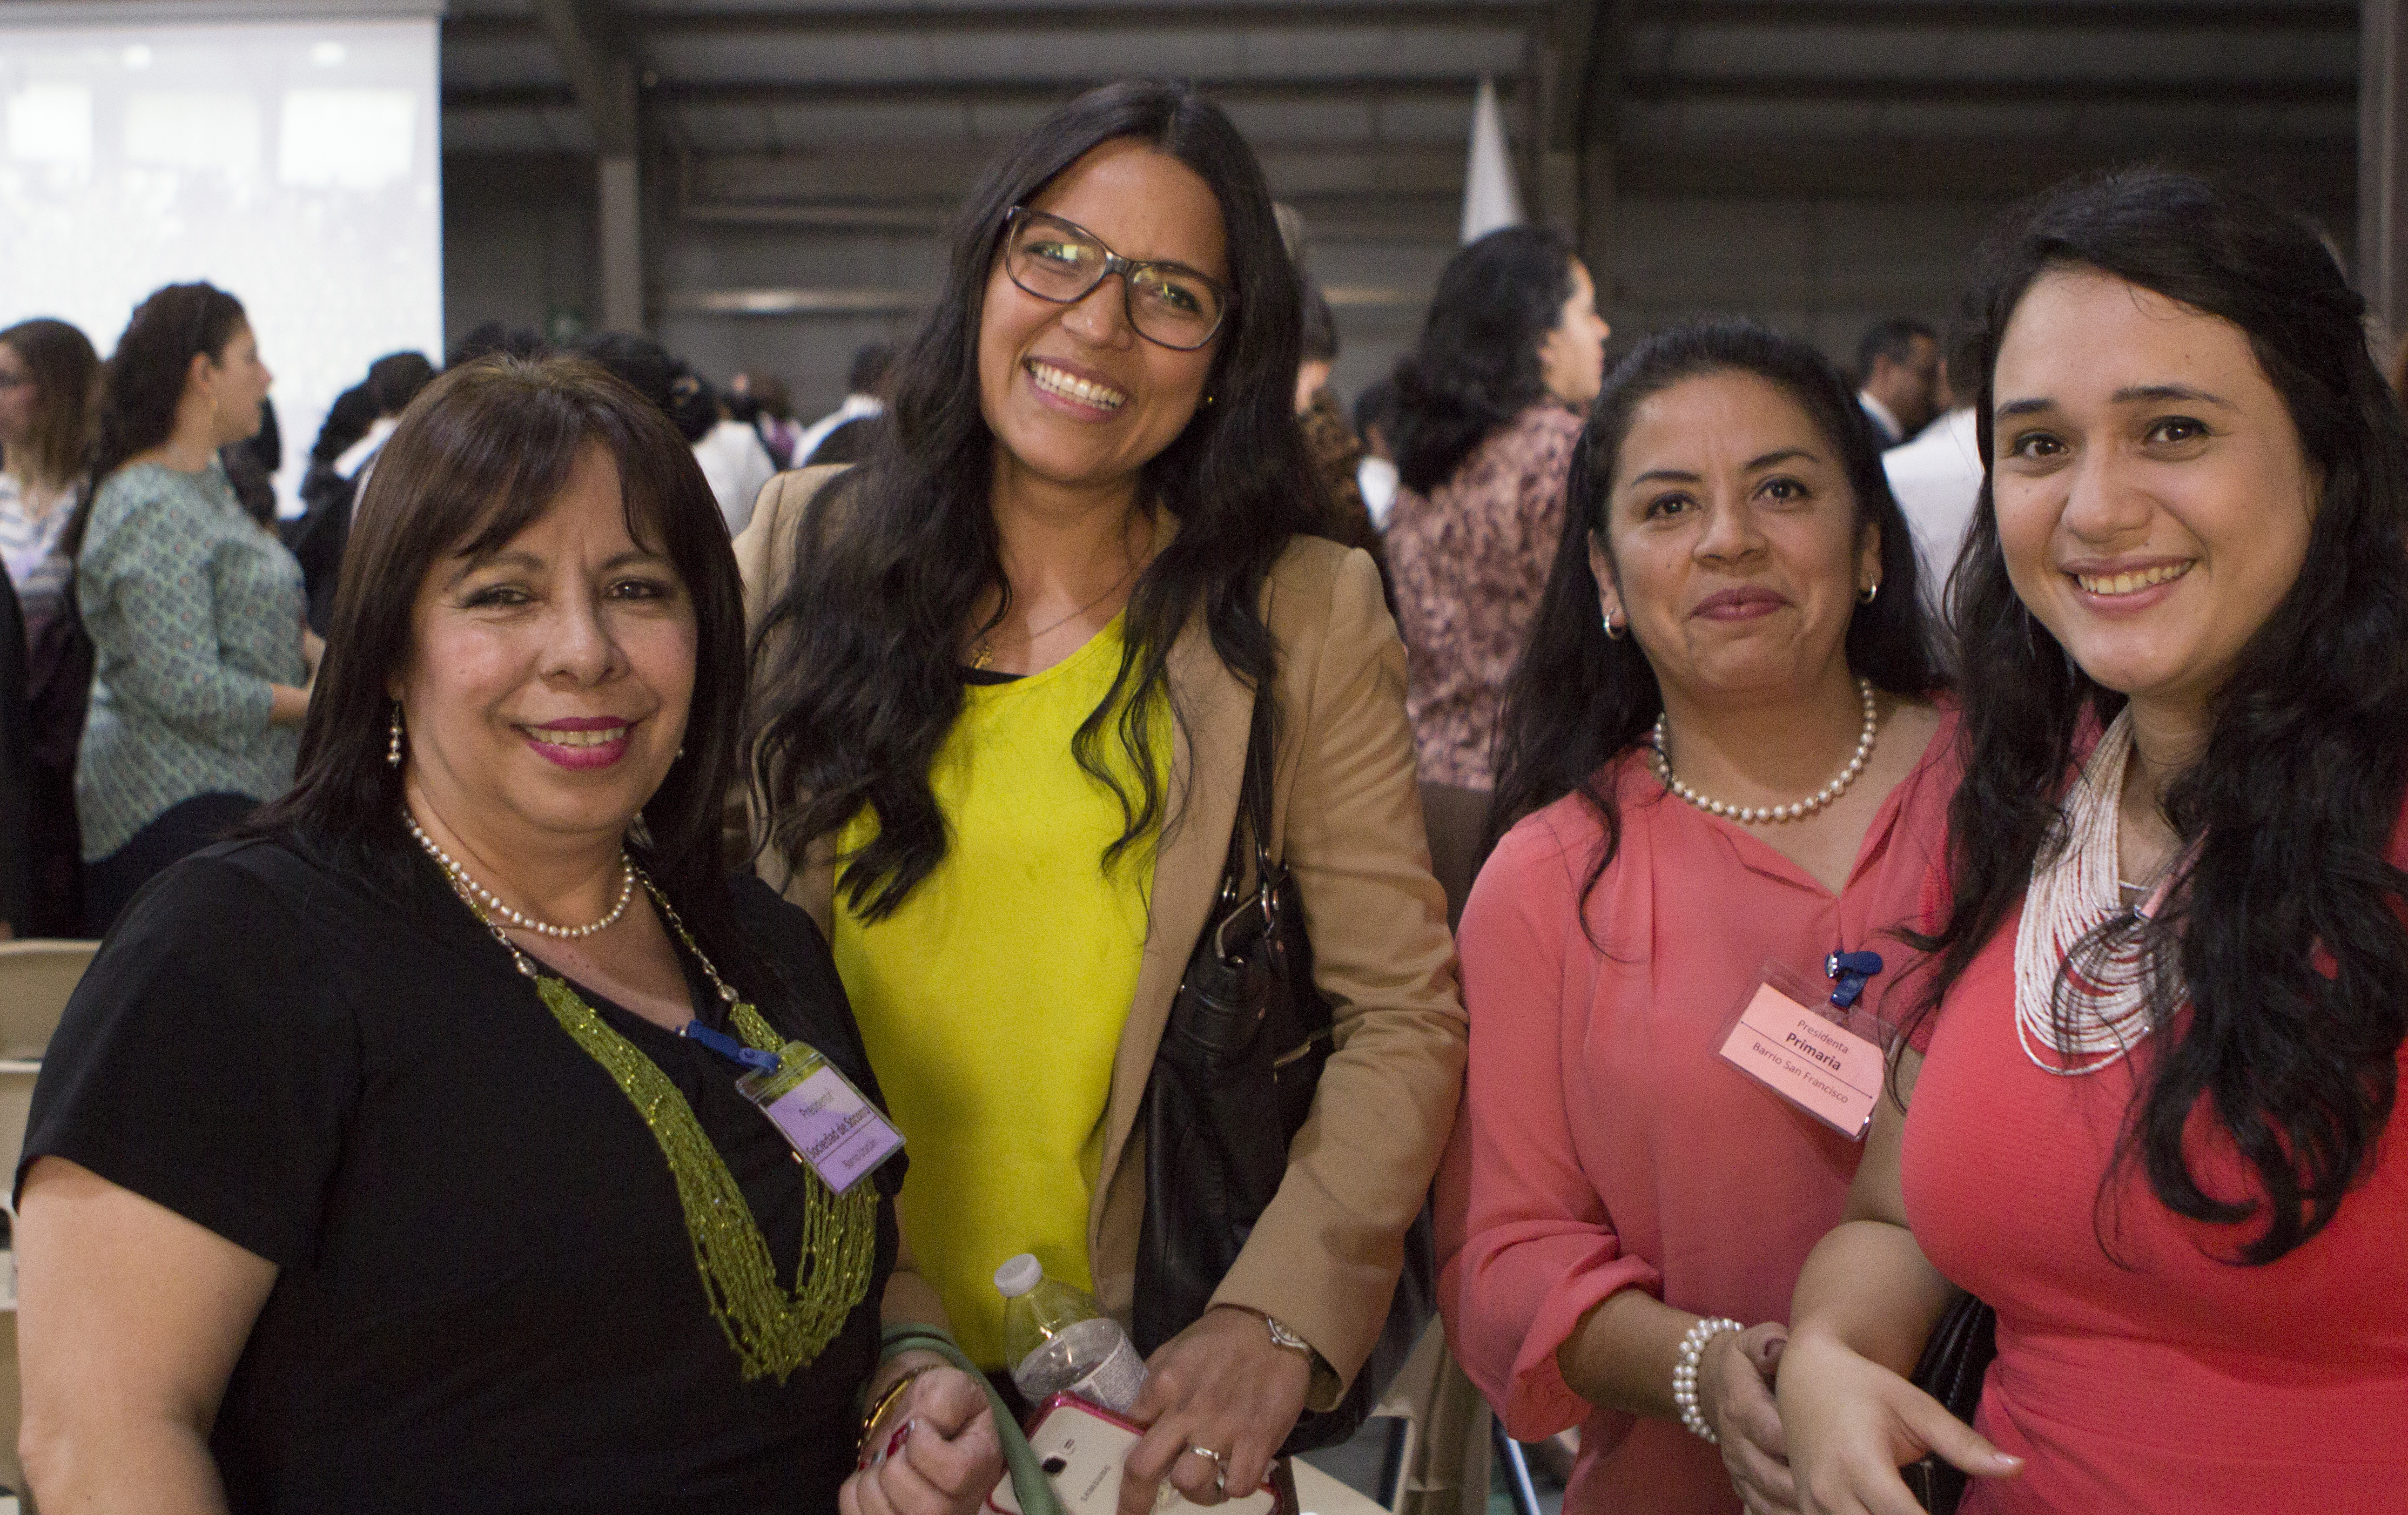 Four Church members on Saturday, February 16 at the leadership conference held in Guatemala City.